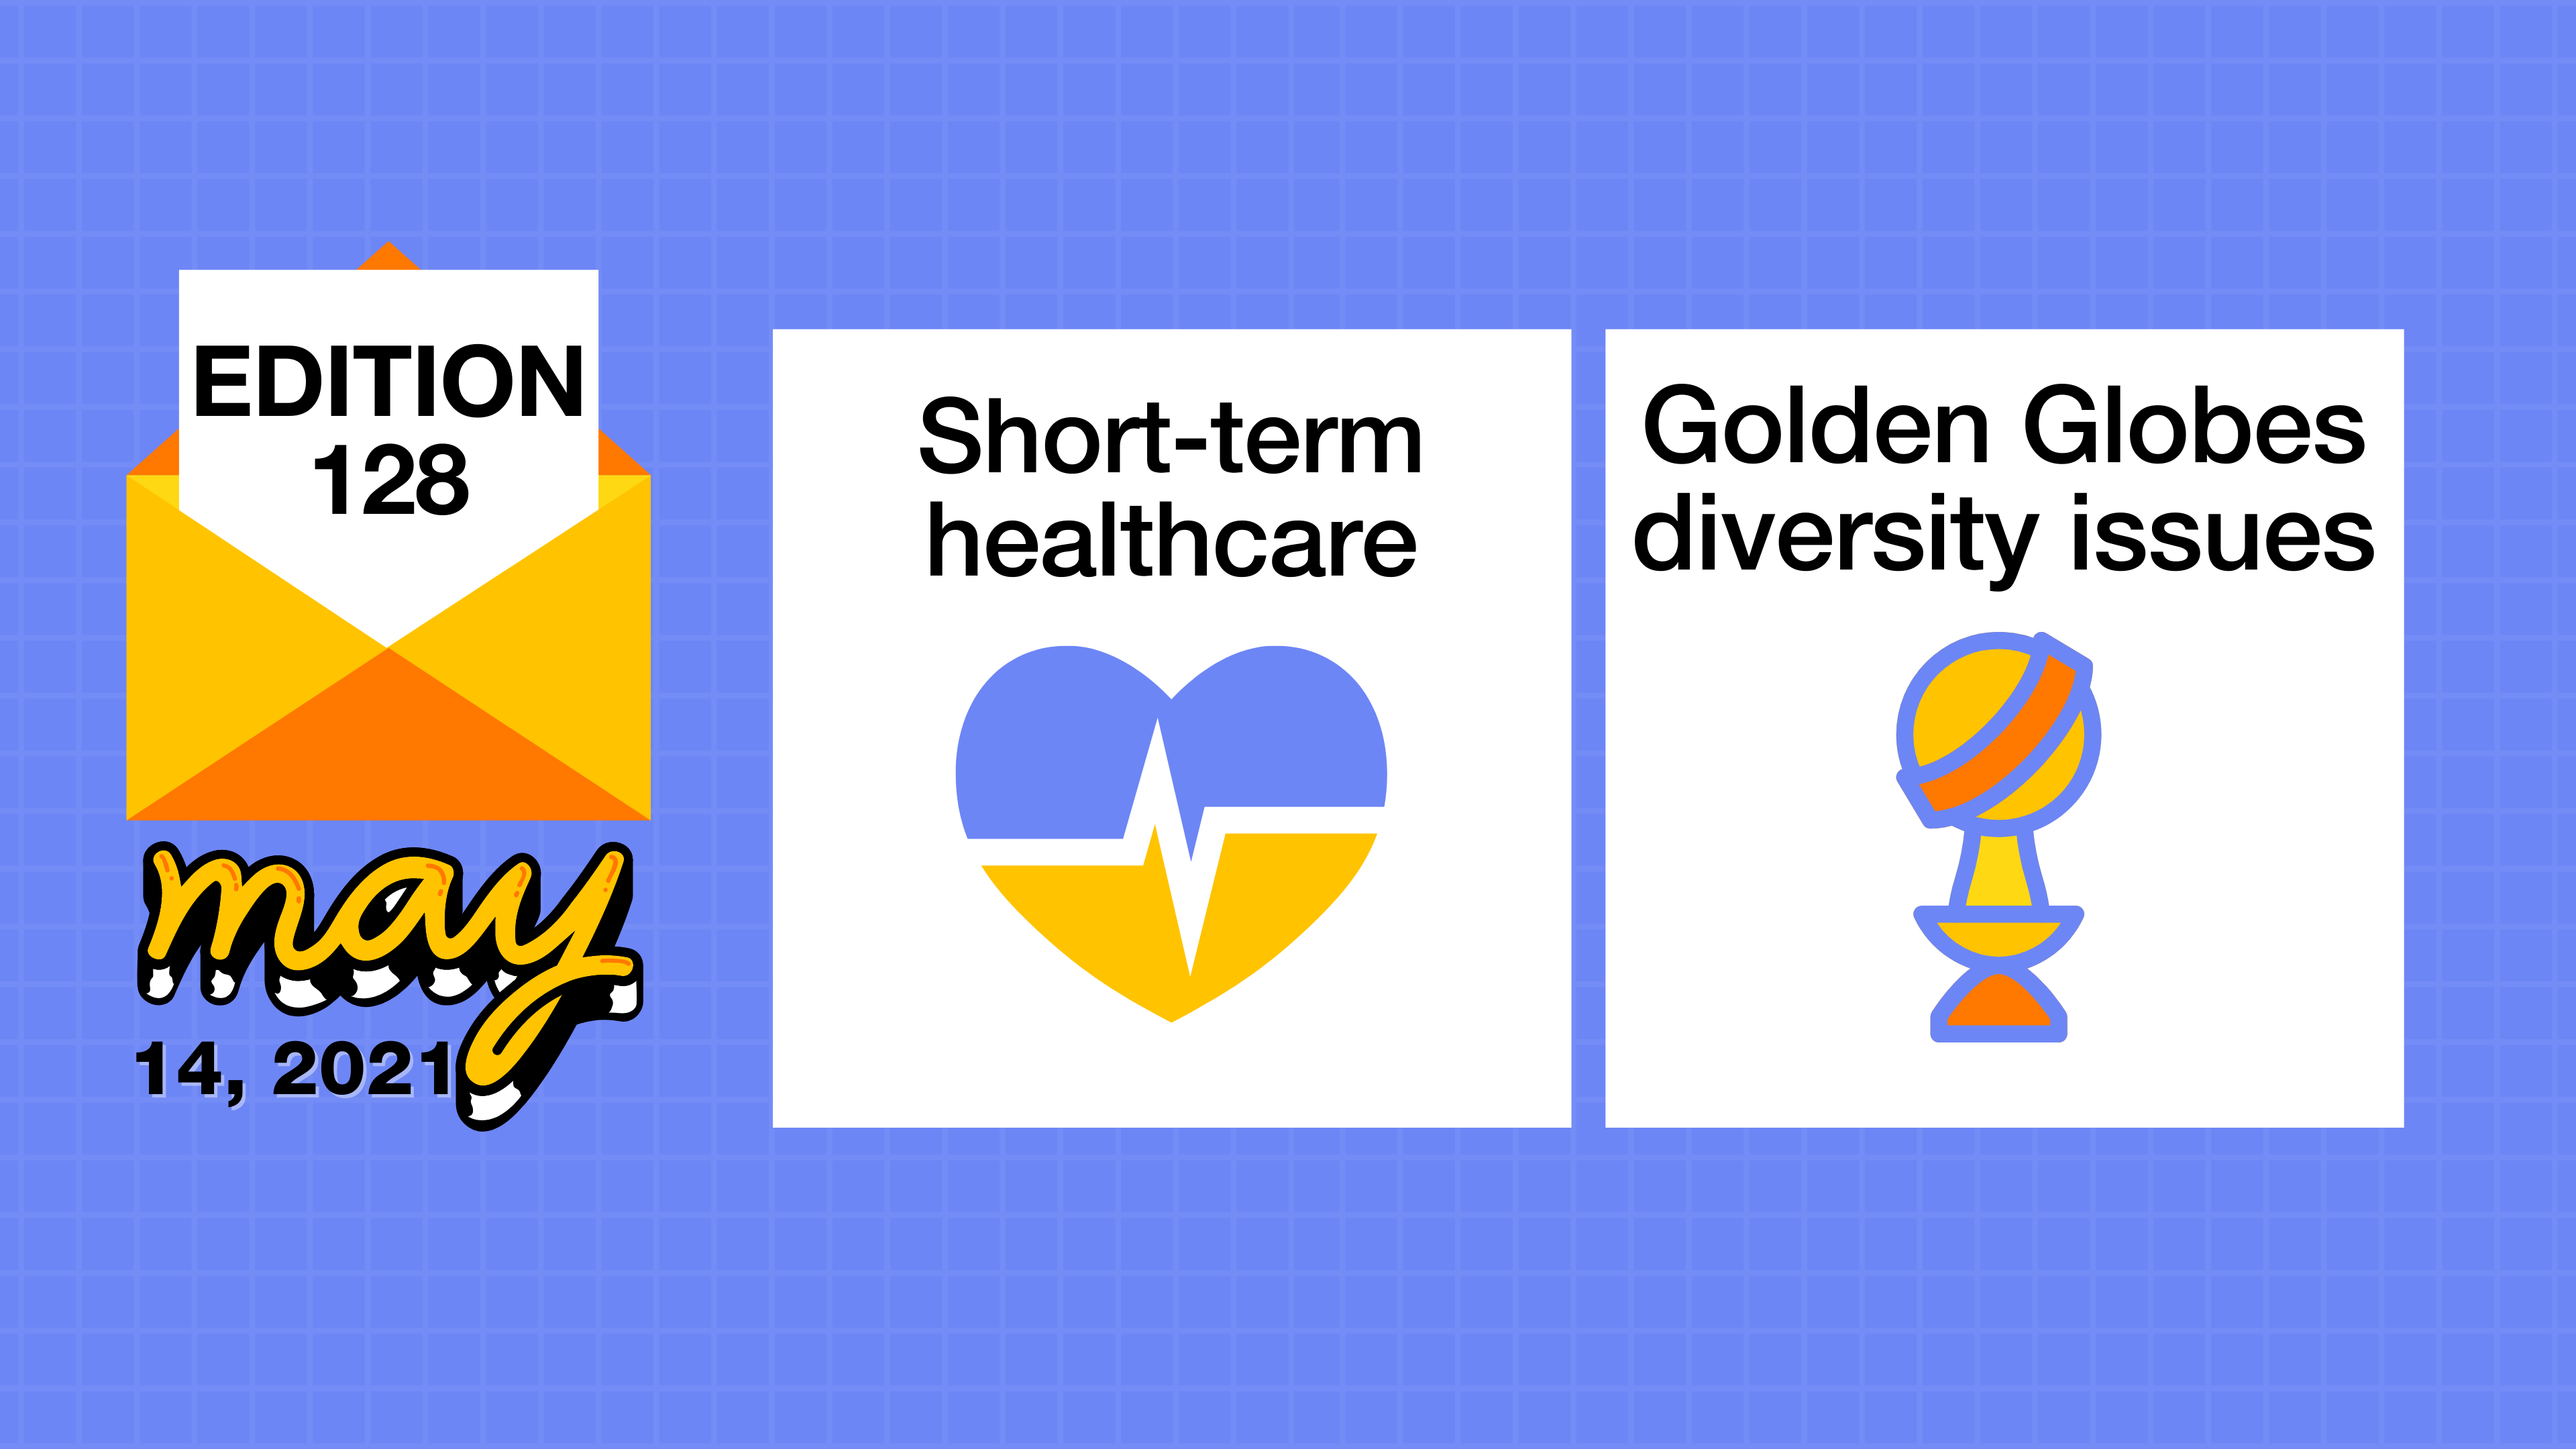 Short-term healthcare and a diversity lacking Golden Globes